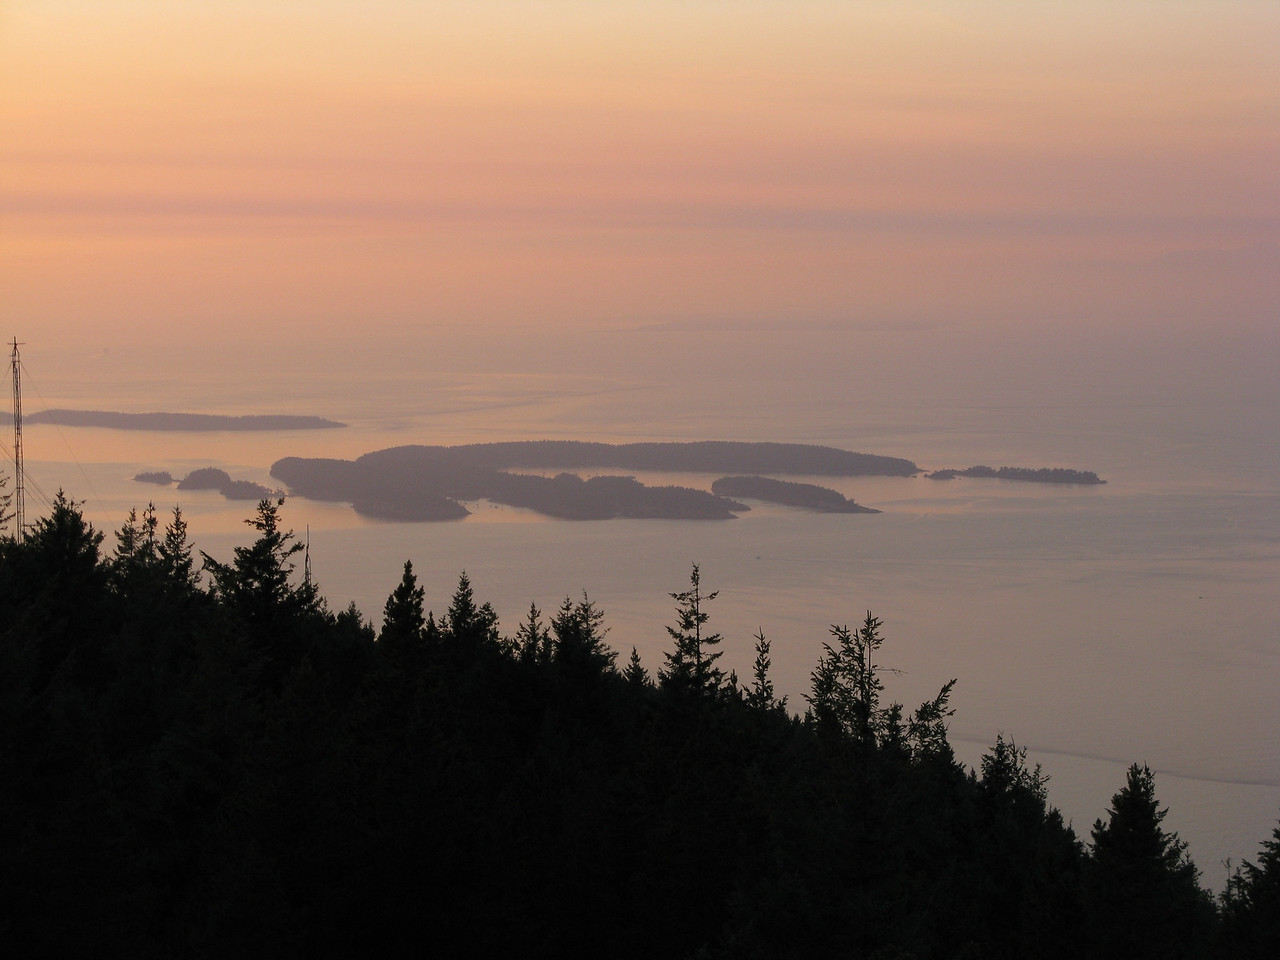 We drove up to Mount Constitution.  From the watchtower, we looked north to see Sucia Island in the distance, from where we had set sail earlier in the day.